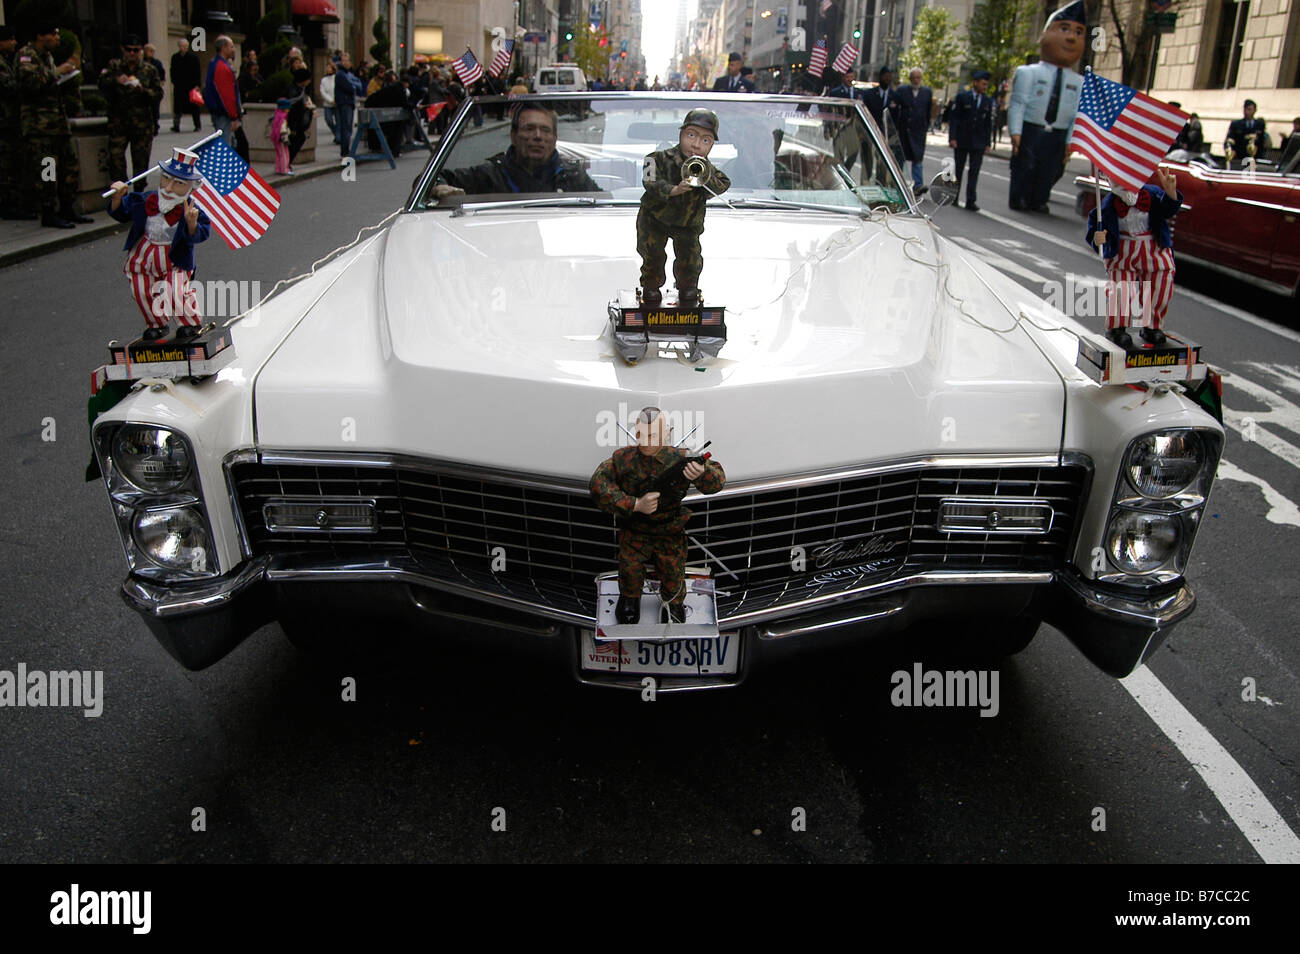 Veterans of American wars in their open top classic American car partake in the Veterans Day Parade in Manhattan, Stock Photo